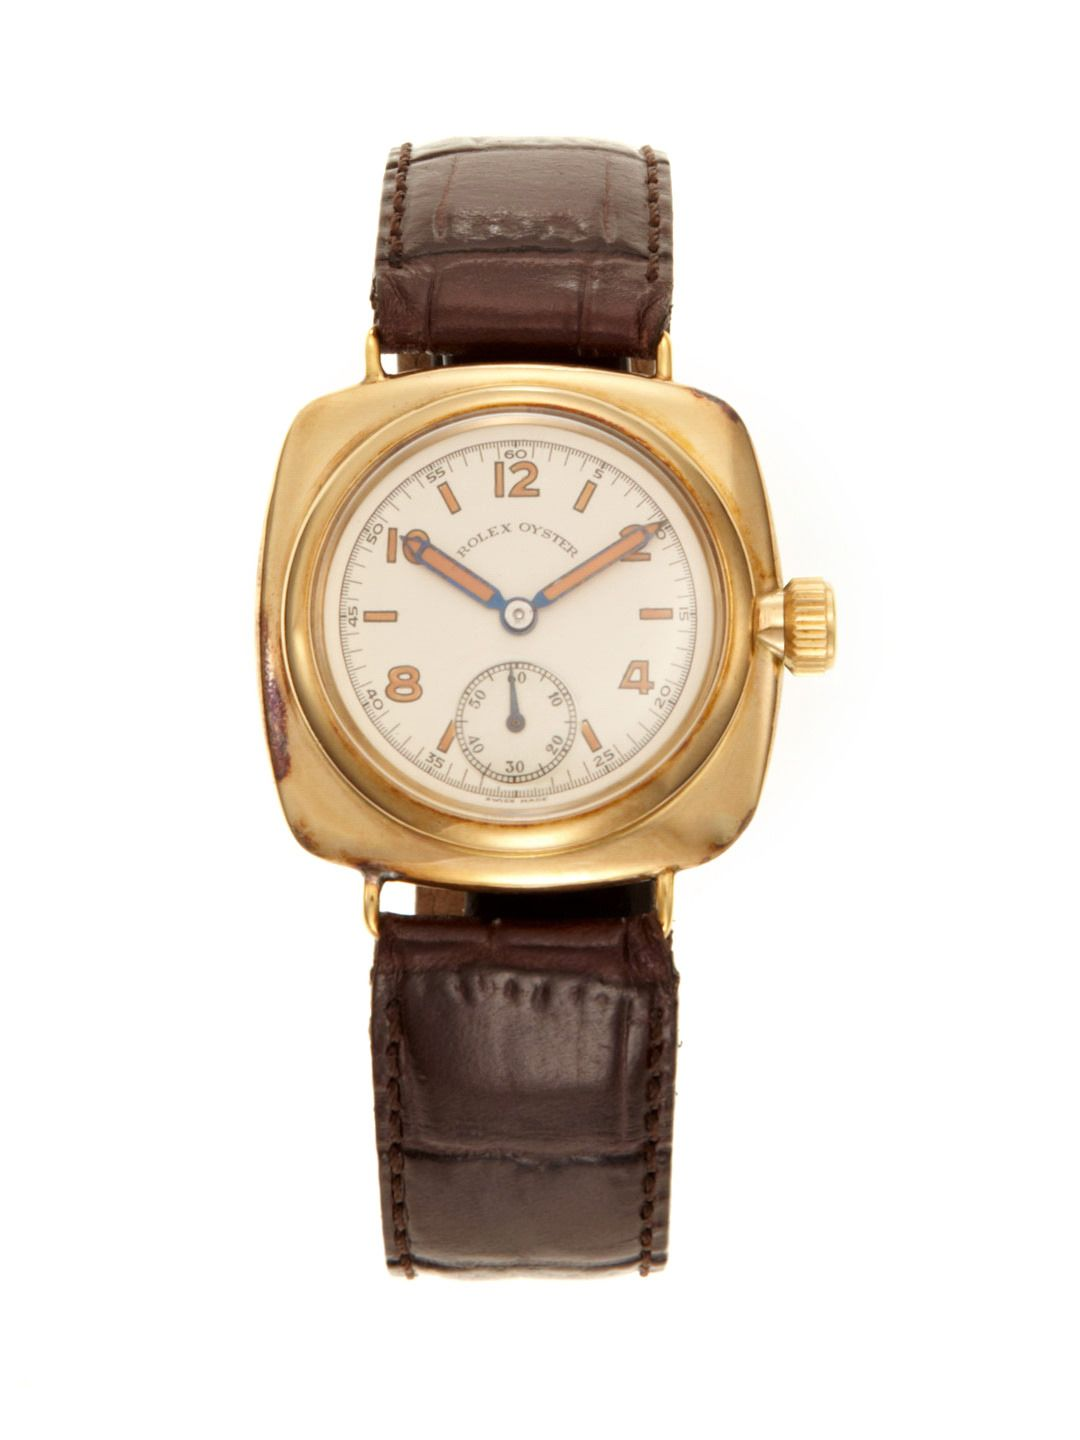 Talk about Vintage 1930 Rolex....still worth $5k! Timepieces hold value!! Not Jewelry watches!!